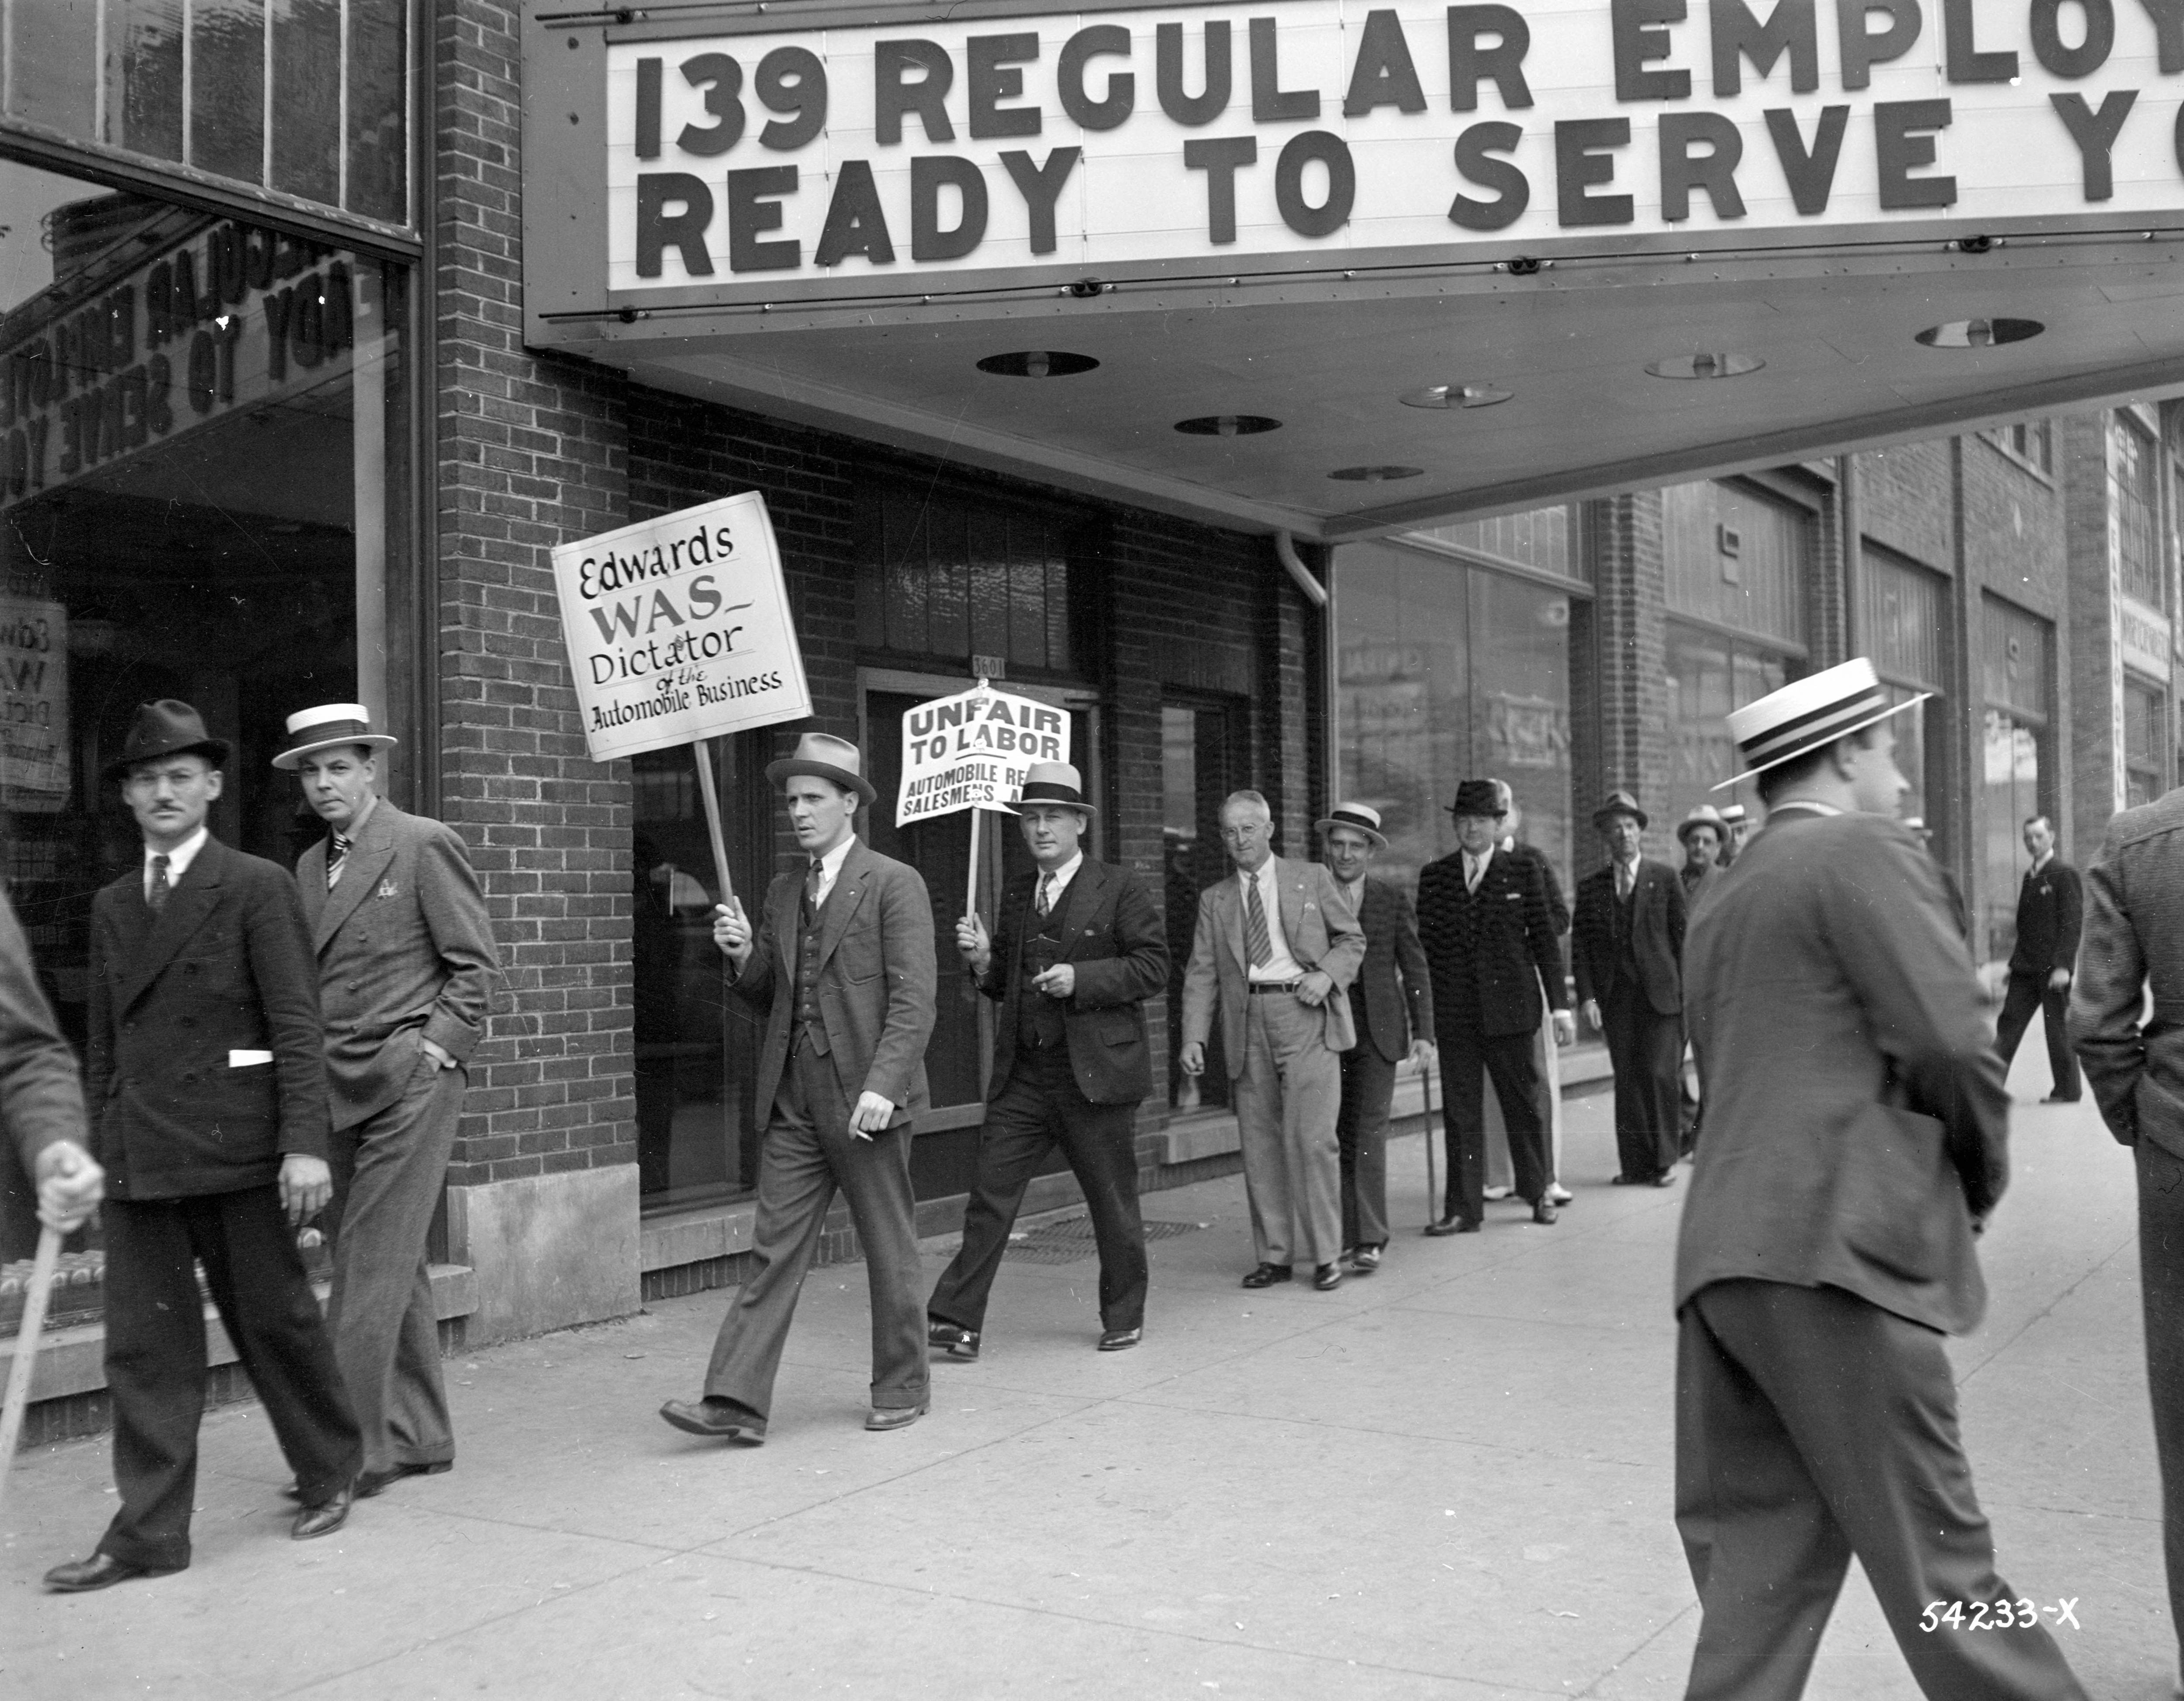 <table class=&quot;lightbox&quot;><tr><td colspan=2 class=&quot;lightbox-title&quot;>Edwards Motor Company Strike</td></tr><tr><td colspan=2 class=&quot;lightbox-caption&quot;>A group of workers from the Edwards Motor Company picket with strike signs on Wisconsin Avenue in 1937.</td></tr><tr><td colspan=2 class=&quot;lightbox-spacer&quot;></td></tr><tr class=&quot;lightbox-detail&quot;><td class=&quot;cell-title&quot;>Source: </td><td class=&quot;cell-value&quot;>From the James Blair Murdoch Photographs. Archives, University of Wisconsin-Milwaukee Libraries.<br /><a href=&quot;https://collections.lib.uwm.edu/digital/collection/jbmurdoch/id/757/rec/12&quot; target=&quot;_blank&quot;>University of Wisconsin-Milwaukee Libraries</a></td></tr><tr class=&quot;filler-row&quot;><td colspan=2>&nbsp;</td></tr></table>